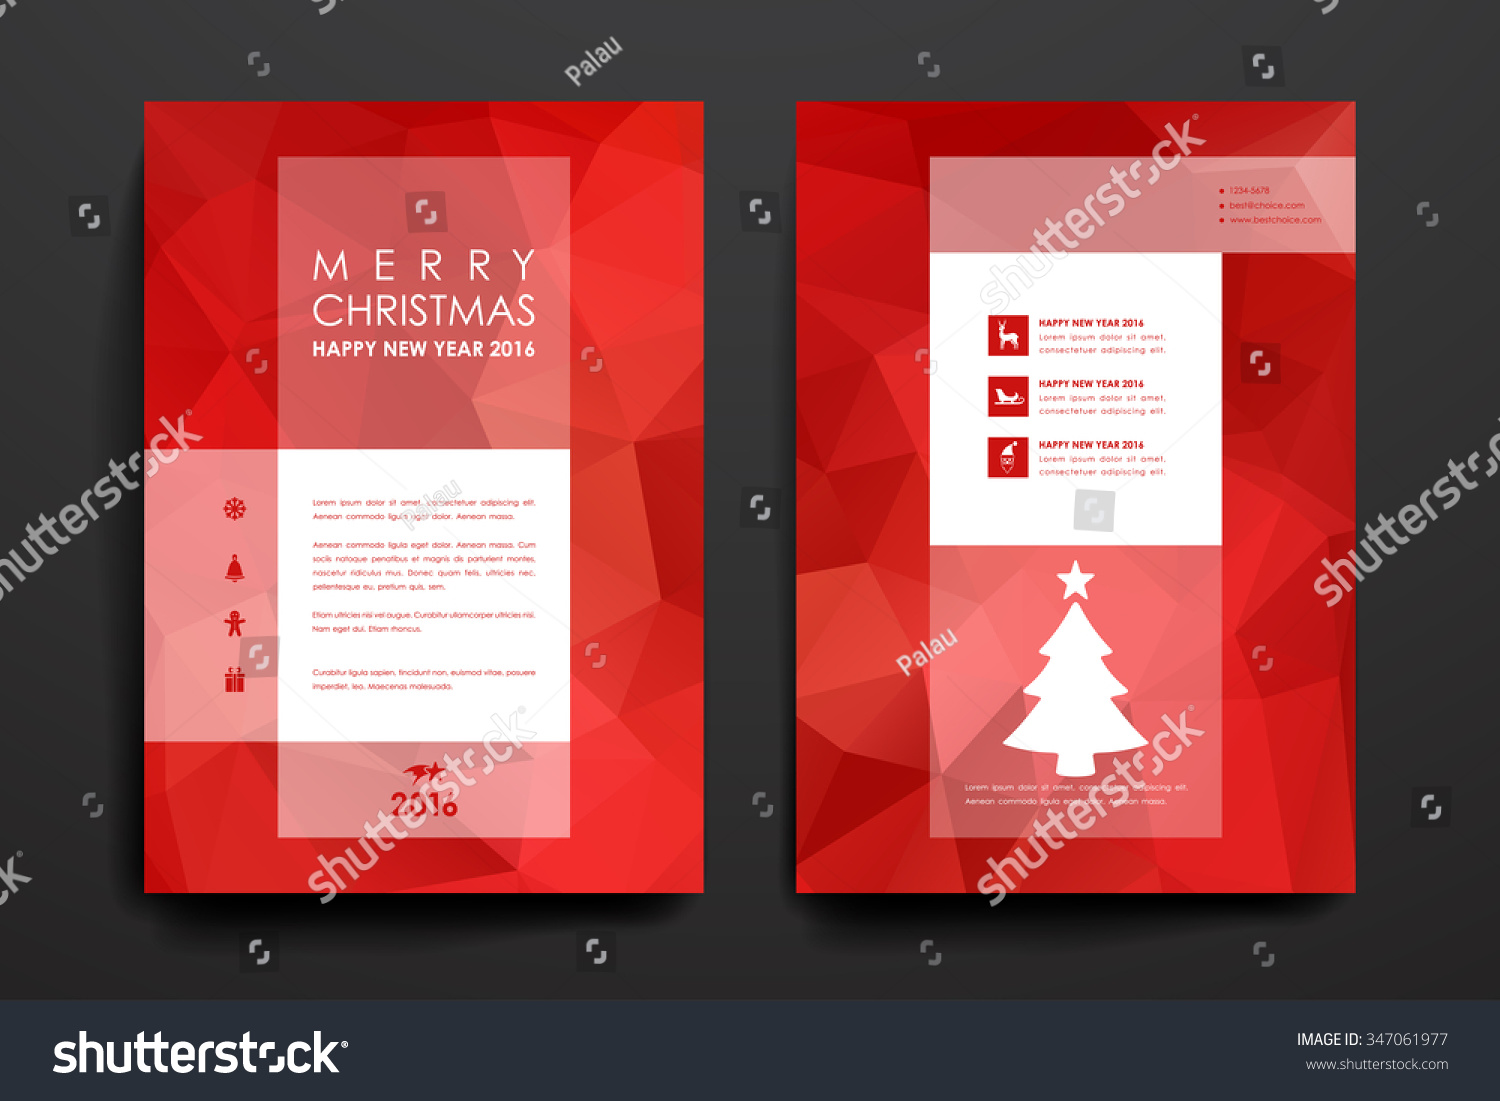 Set of brochure poster templates in Christmas style Beautiful design and layout